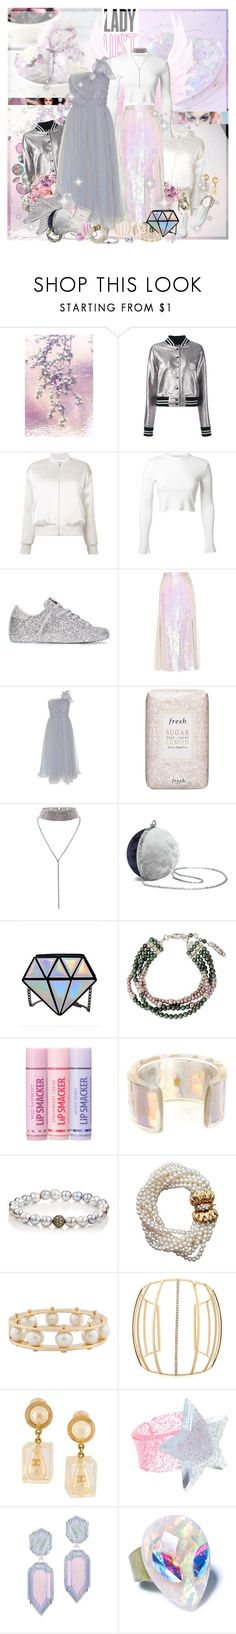 """""""So bad that it's good"""" by lady-redrise ❤ liked on Polyvore featuring Kershaw, R13, Frame, Rosetta Getty, Golden Goose, Christopher Kane, RED Valentino, Fresh, H&M and M. Gemi"""